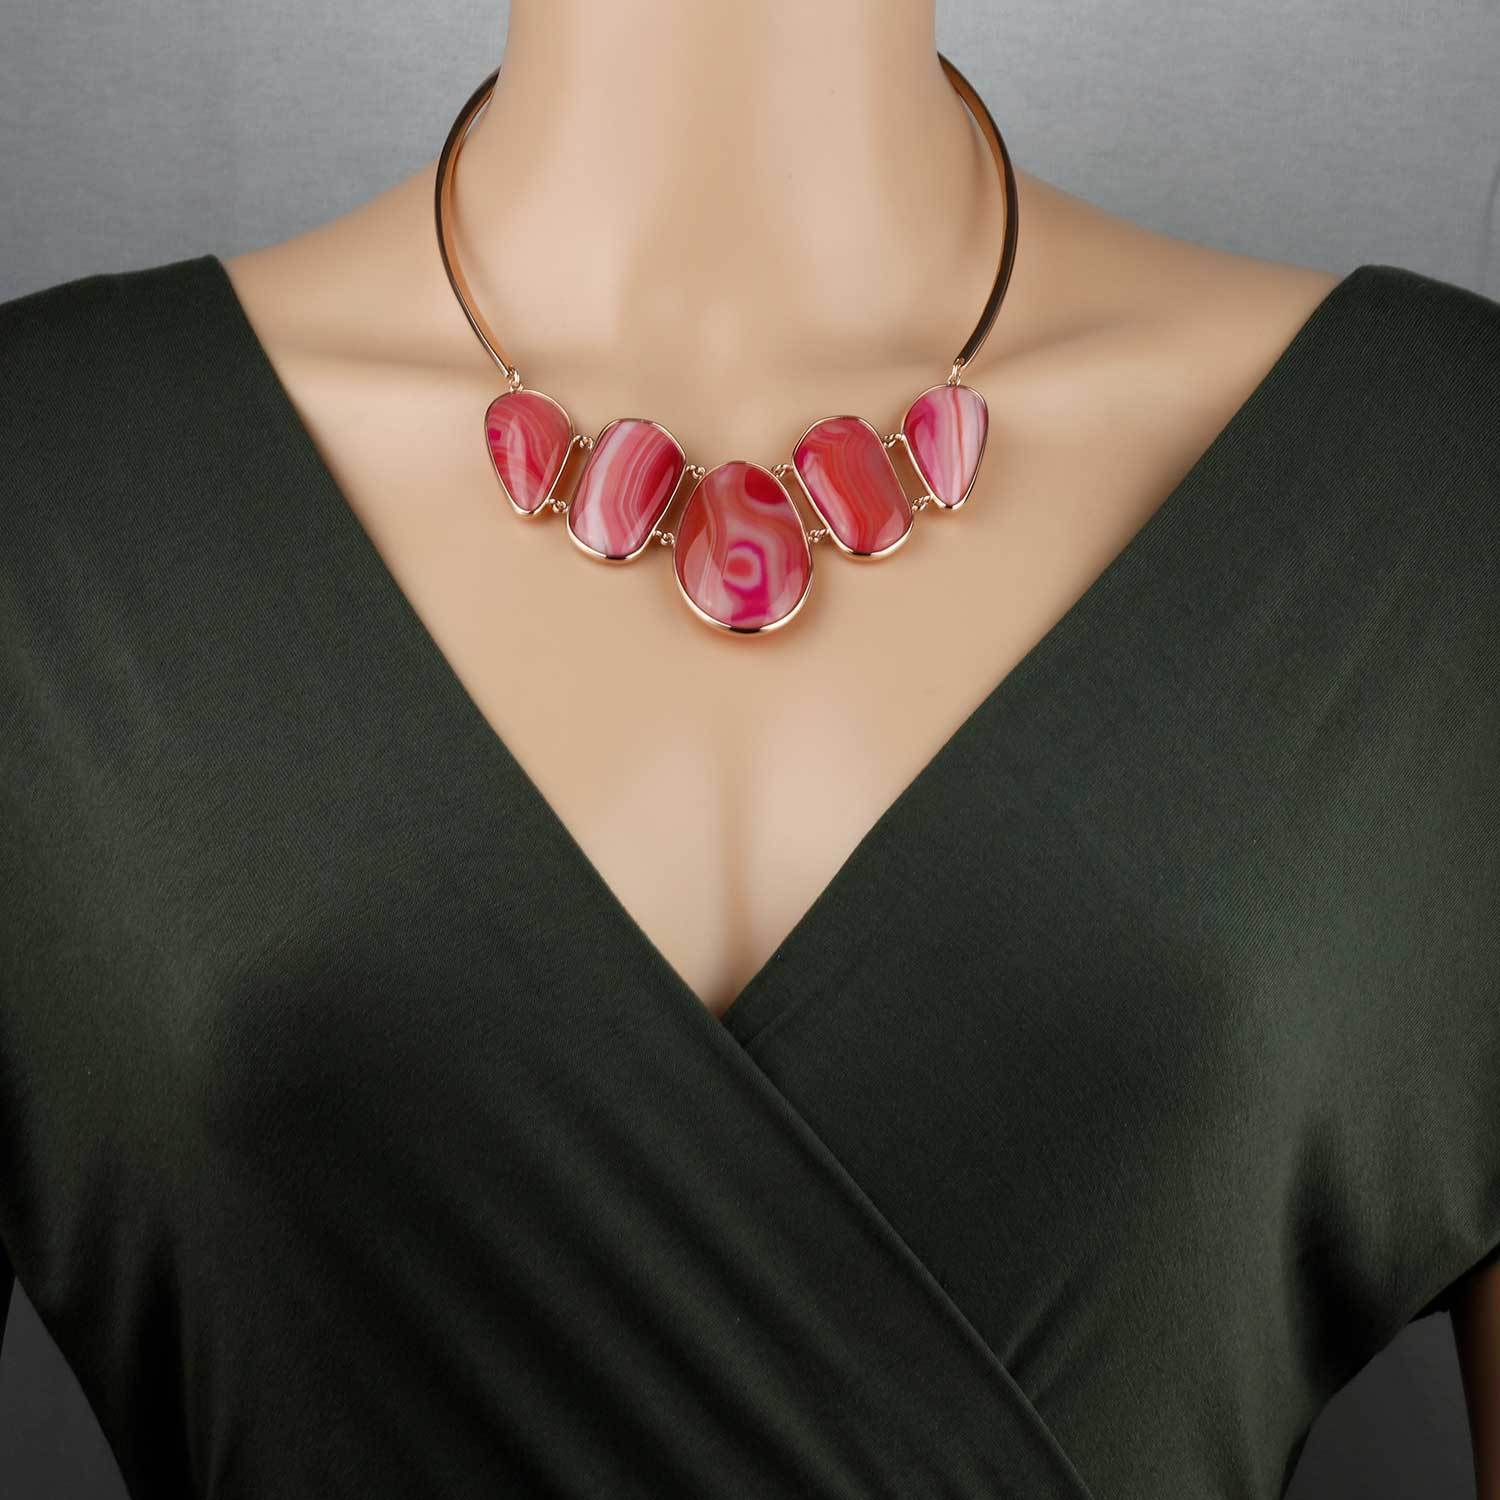 18ct Rose Gold Vermeil Persian Agate Avalon Statement Necklace